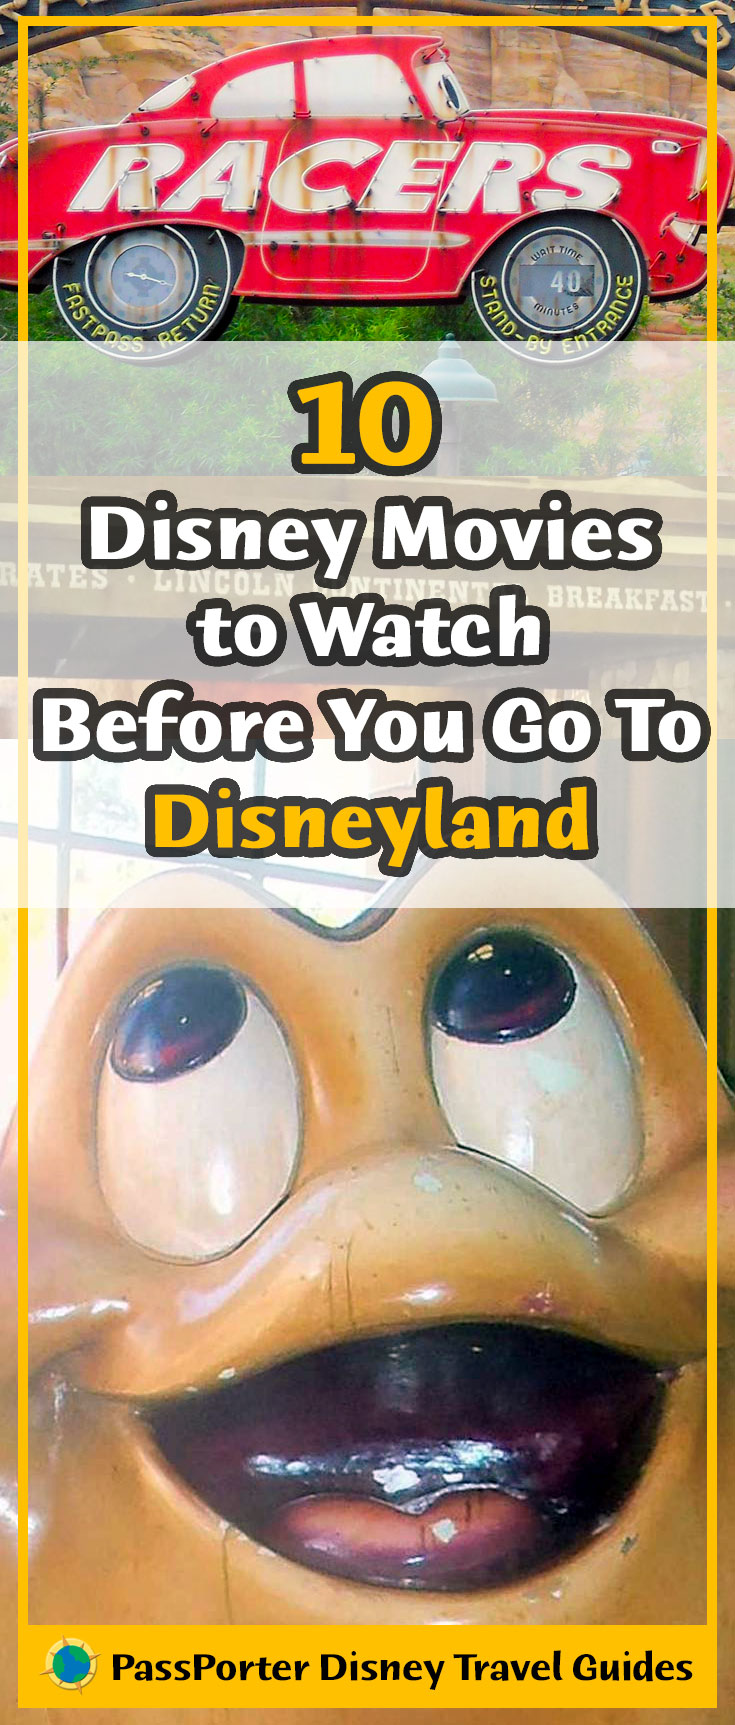 Watch the movies before you experience the Disneyland attractions | Disneyland Resort | PassPorter.com